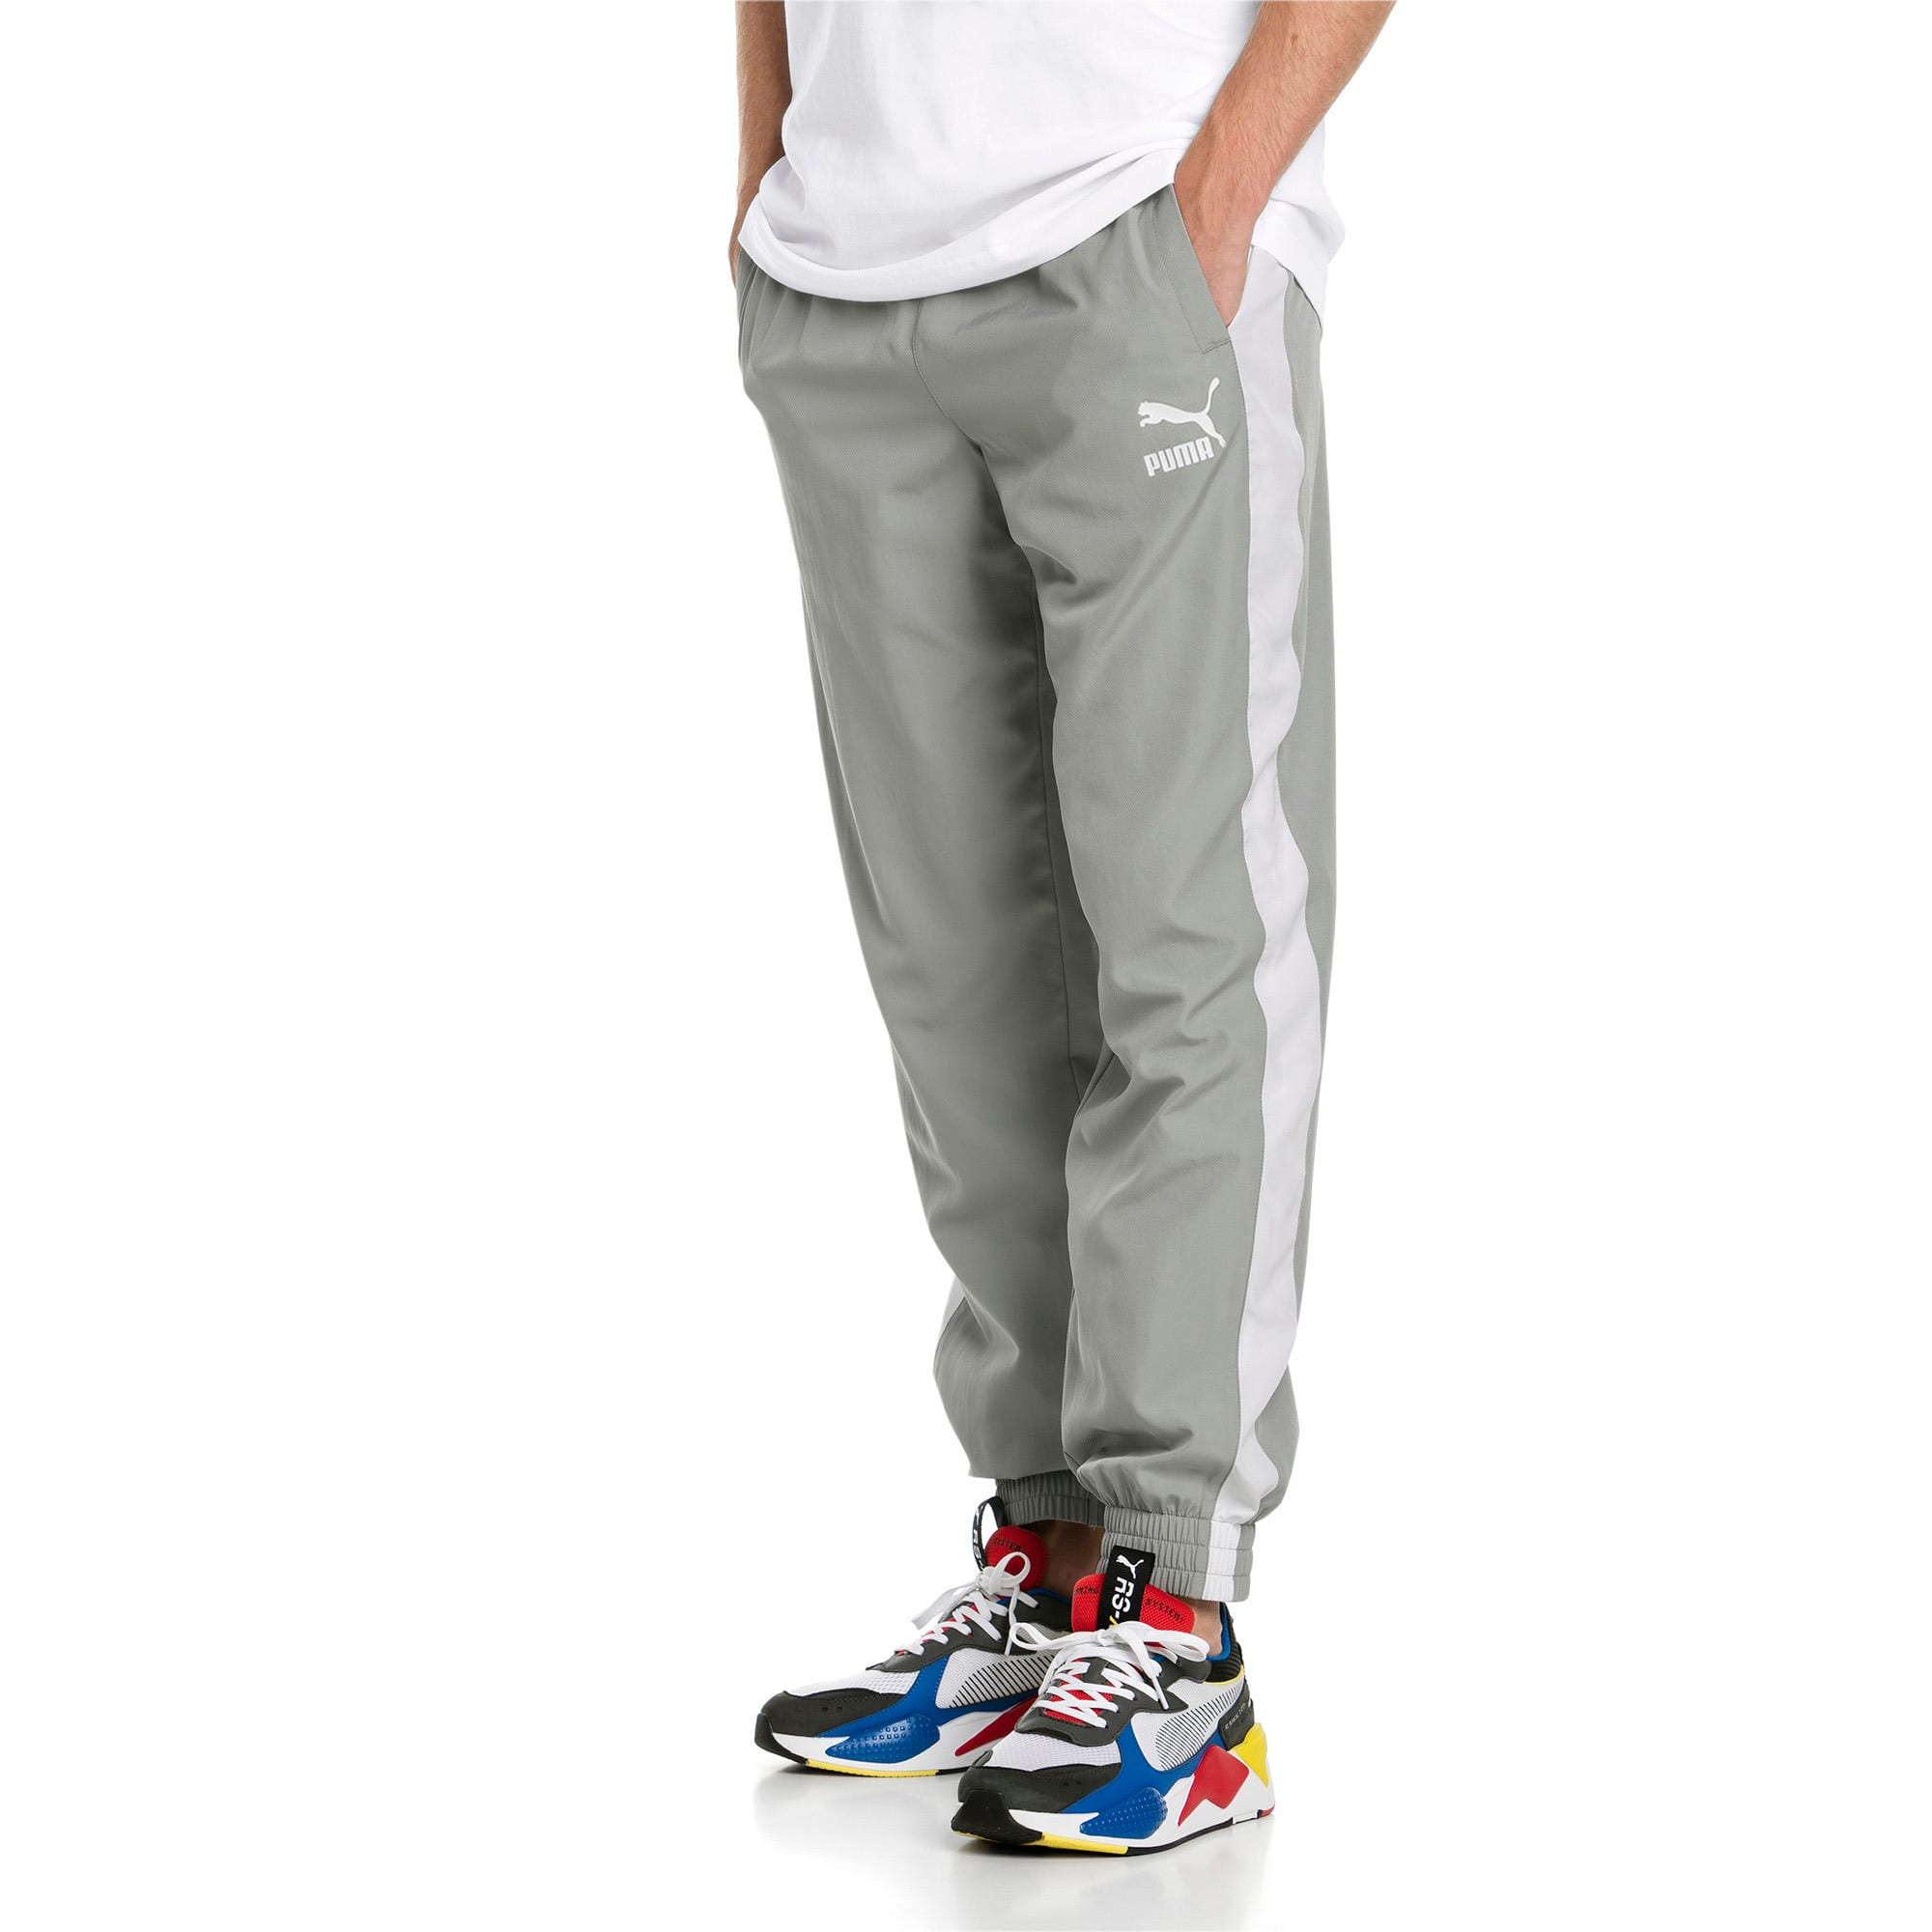 Thumbnail 2 of Iconic T7 Woven Men's Sweatpants, Limestone, medium-IND